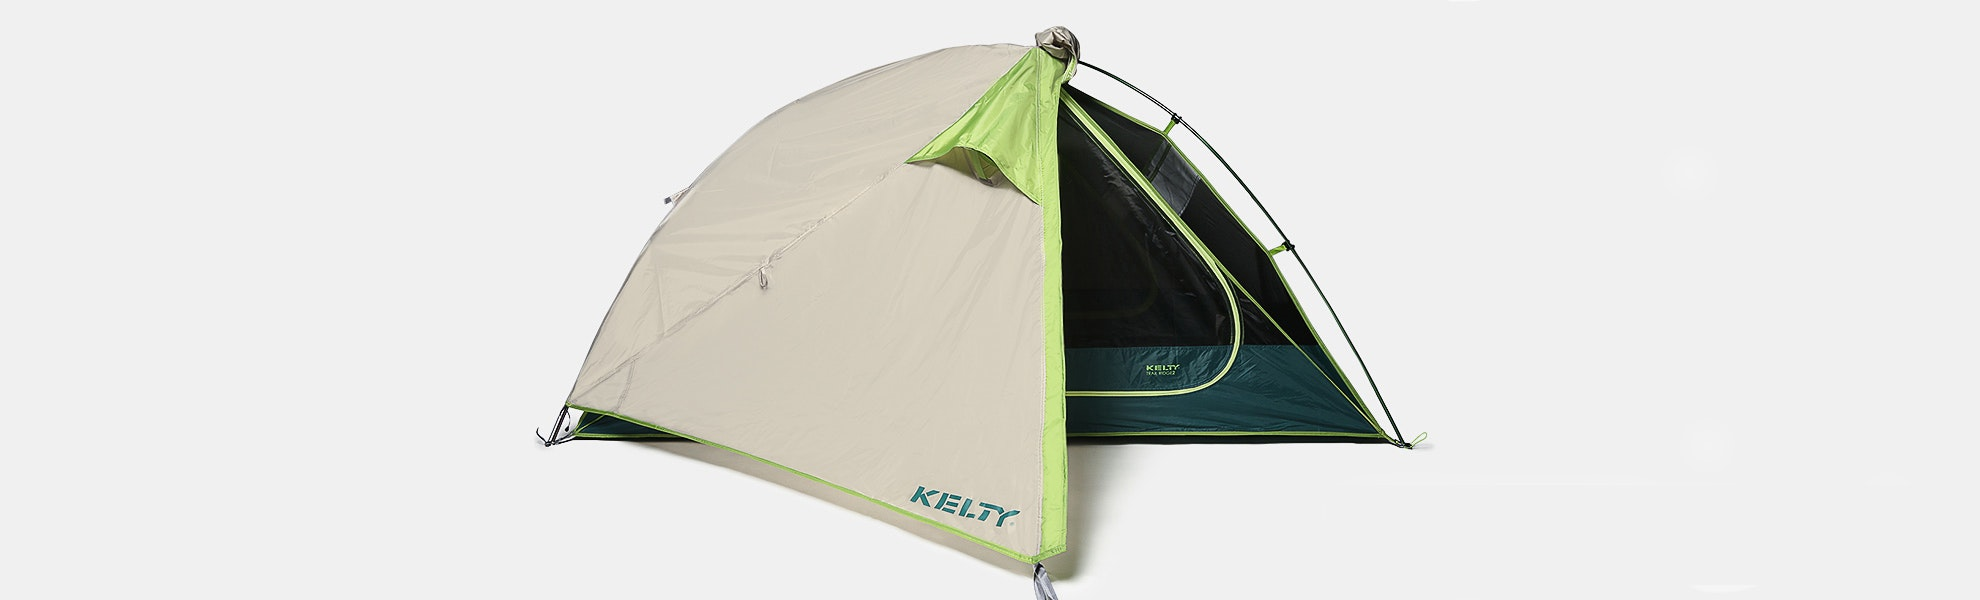 Kelty Trail Ridge Tents w/ Footprints & Kelty Trail Ridge Tents w/ Footprints | Price u0026 Reviews | Massdrop